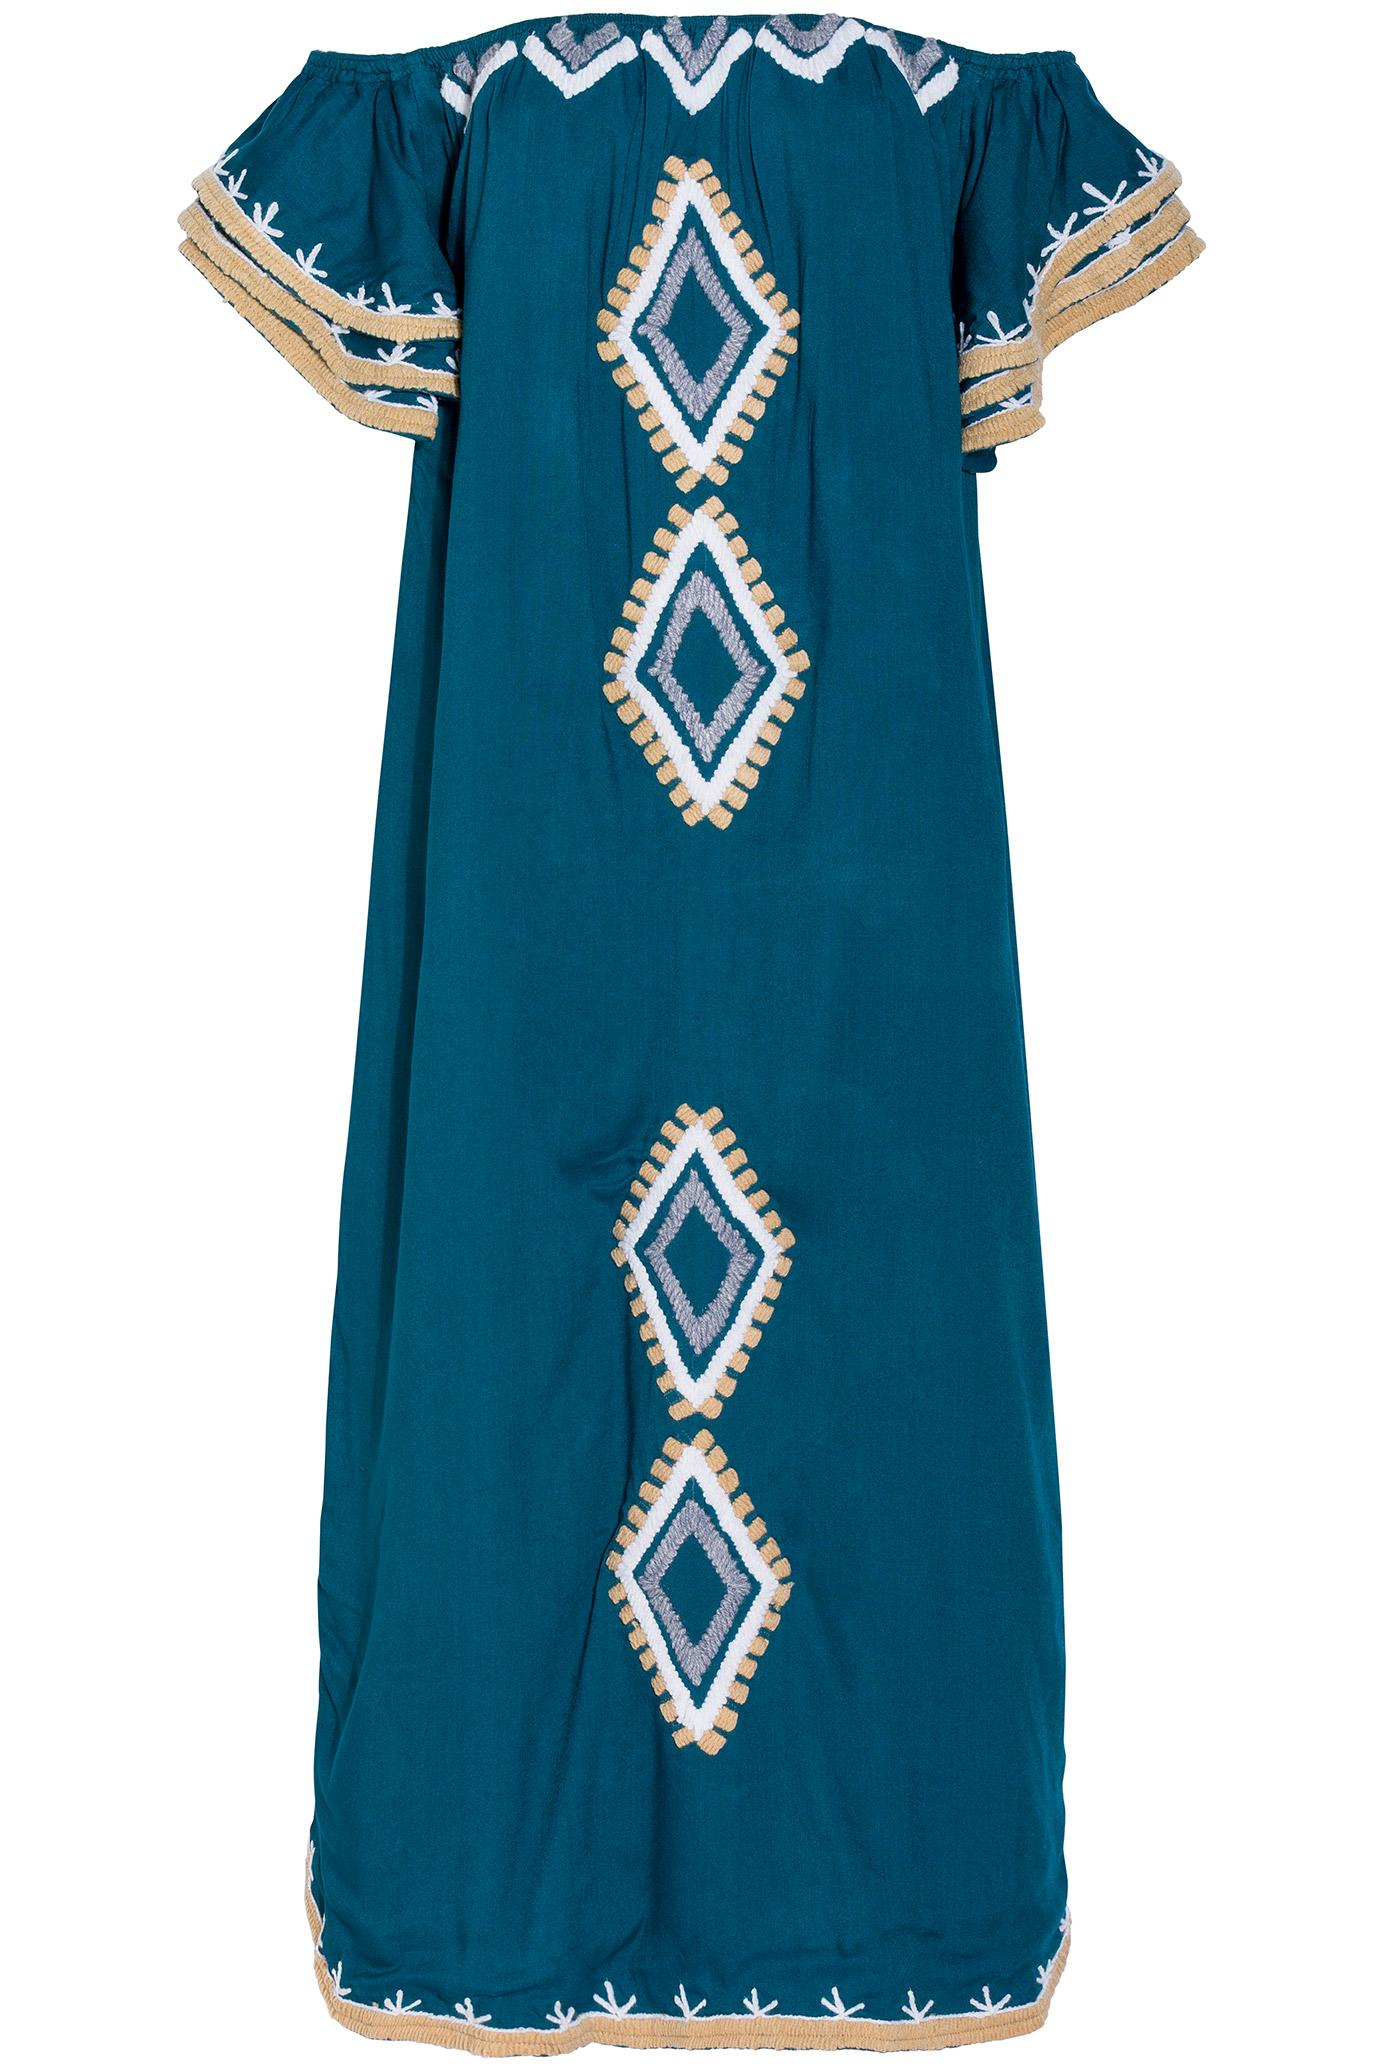 All Things Mochi Nwella Embroidered Dress In Blue Lyst